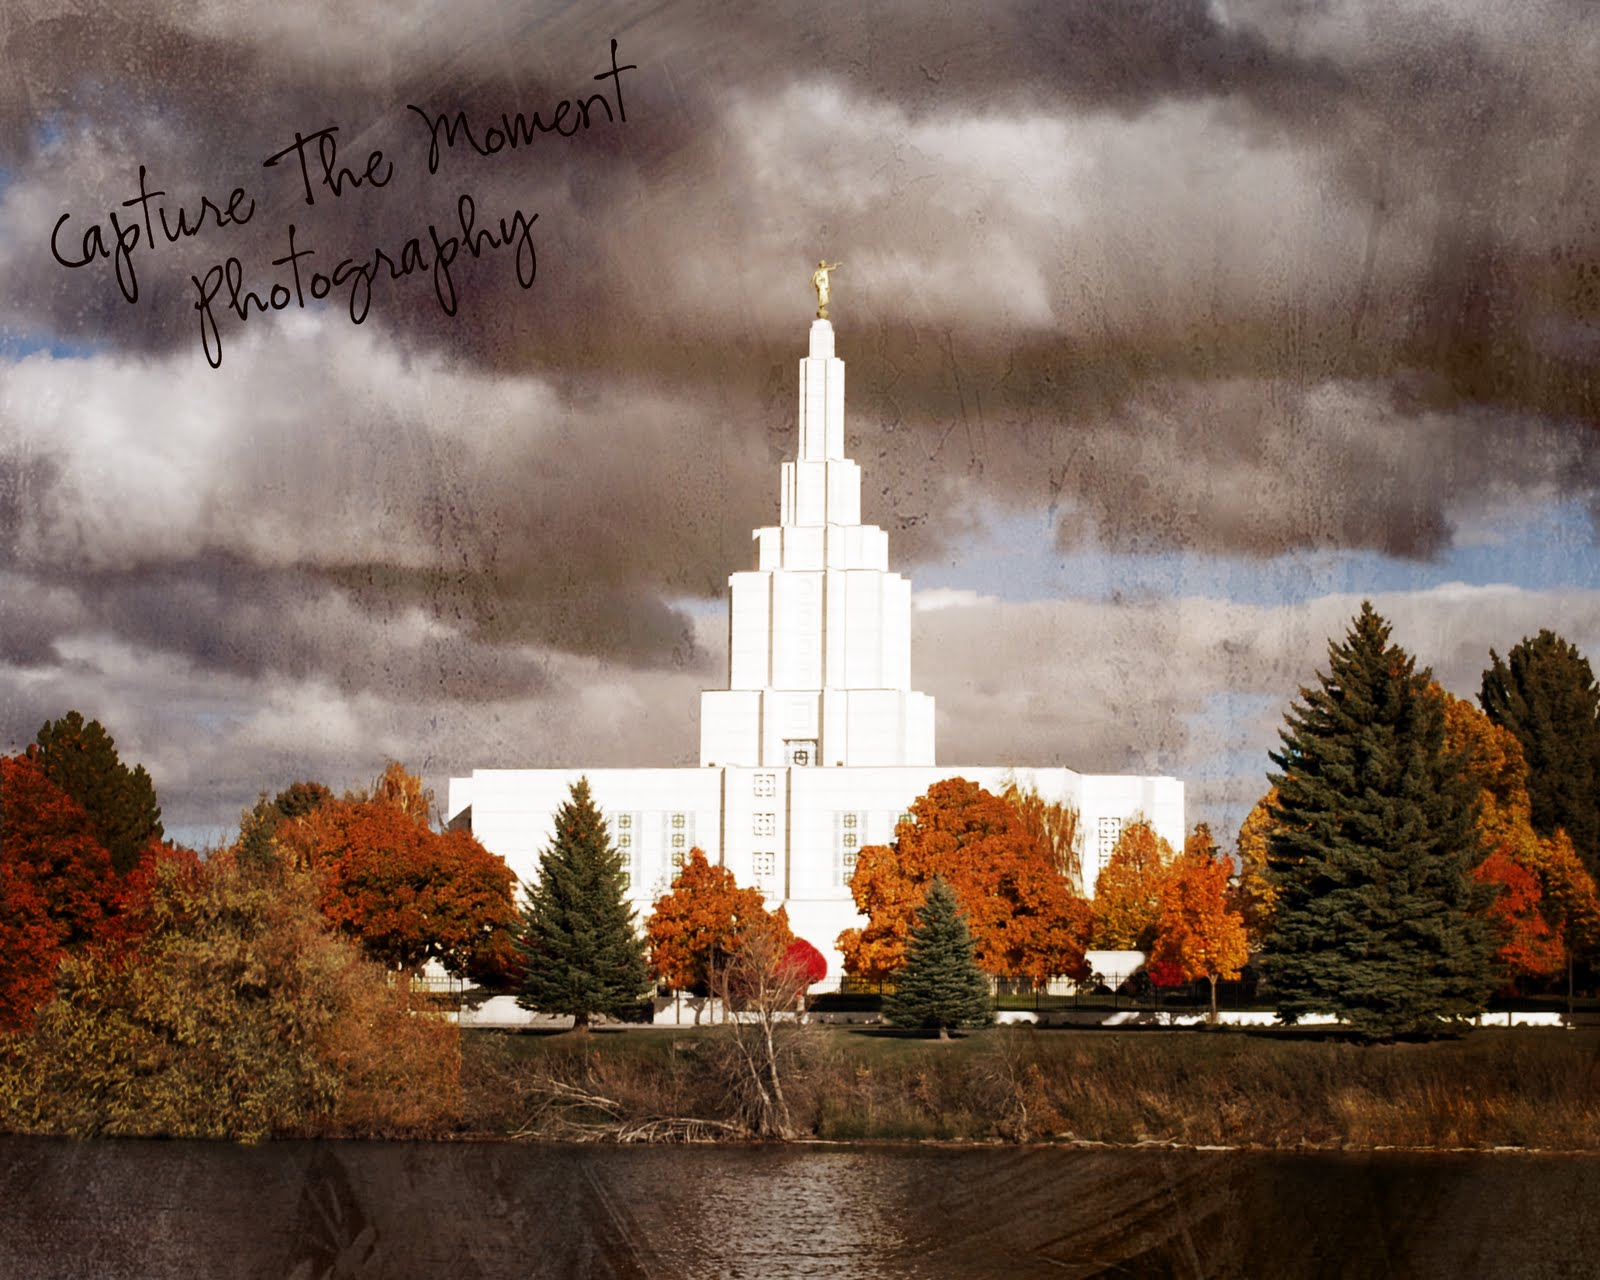 Idaho Falls Temple Antique Pictures. Posted by Capture The Moment Photography at 2:52 PM